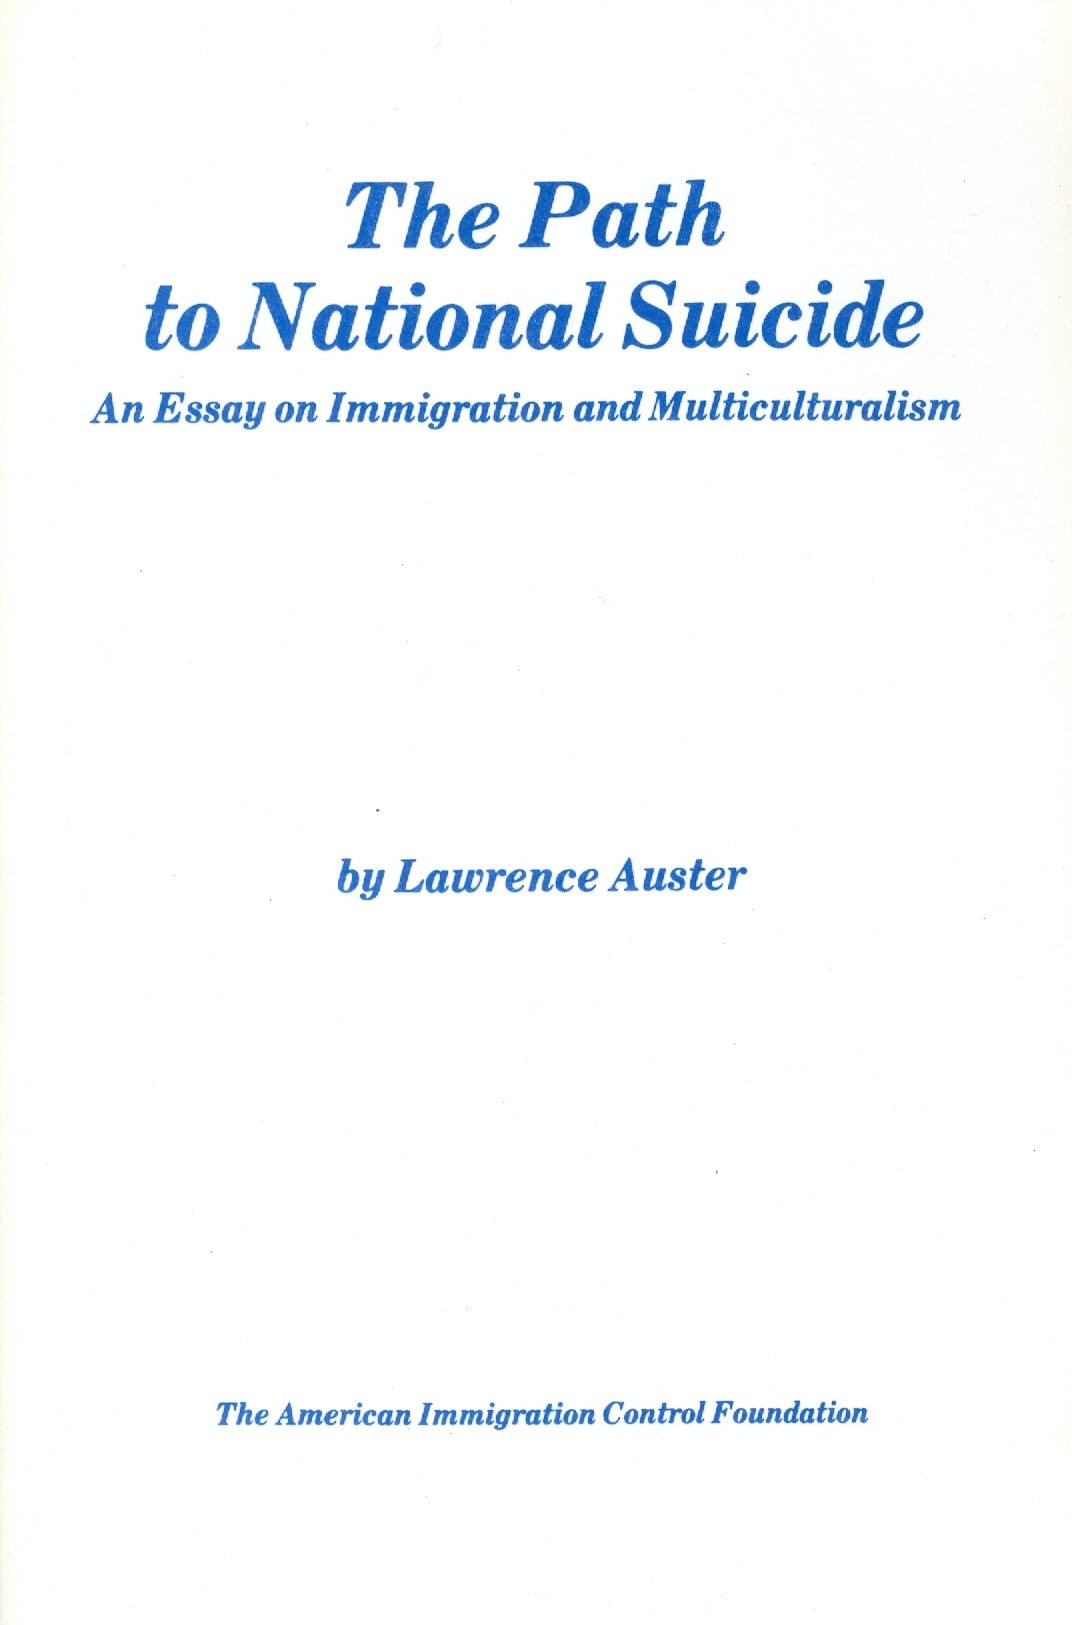 the path to national suicide an essay on immigration and the path to national suicide an essay on immigration and multiculturalism lawrence auster 9780936247120 amazon com books